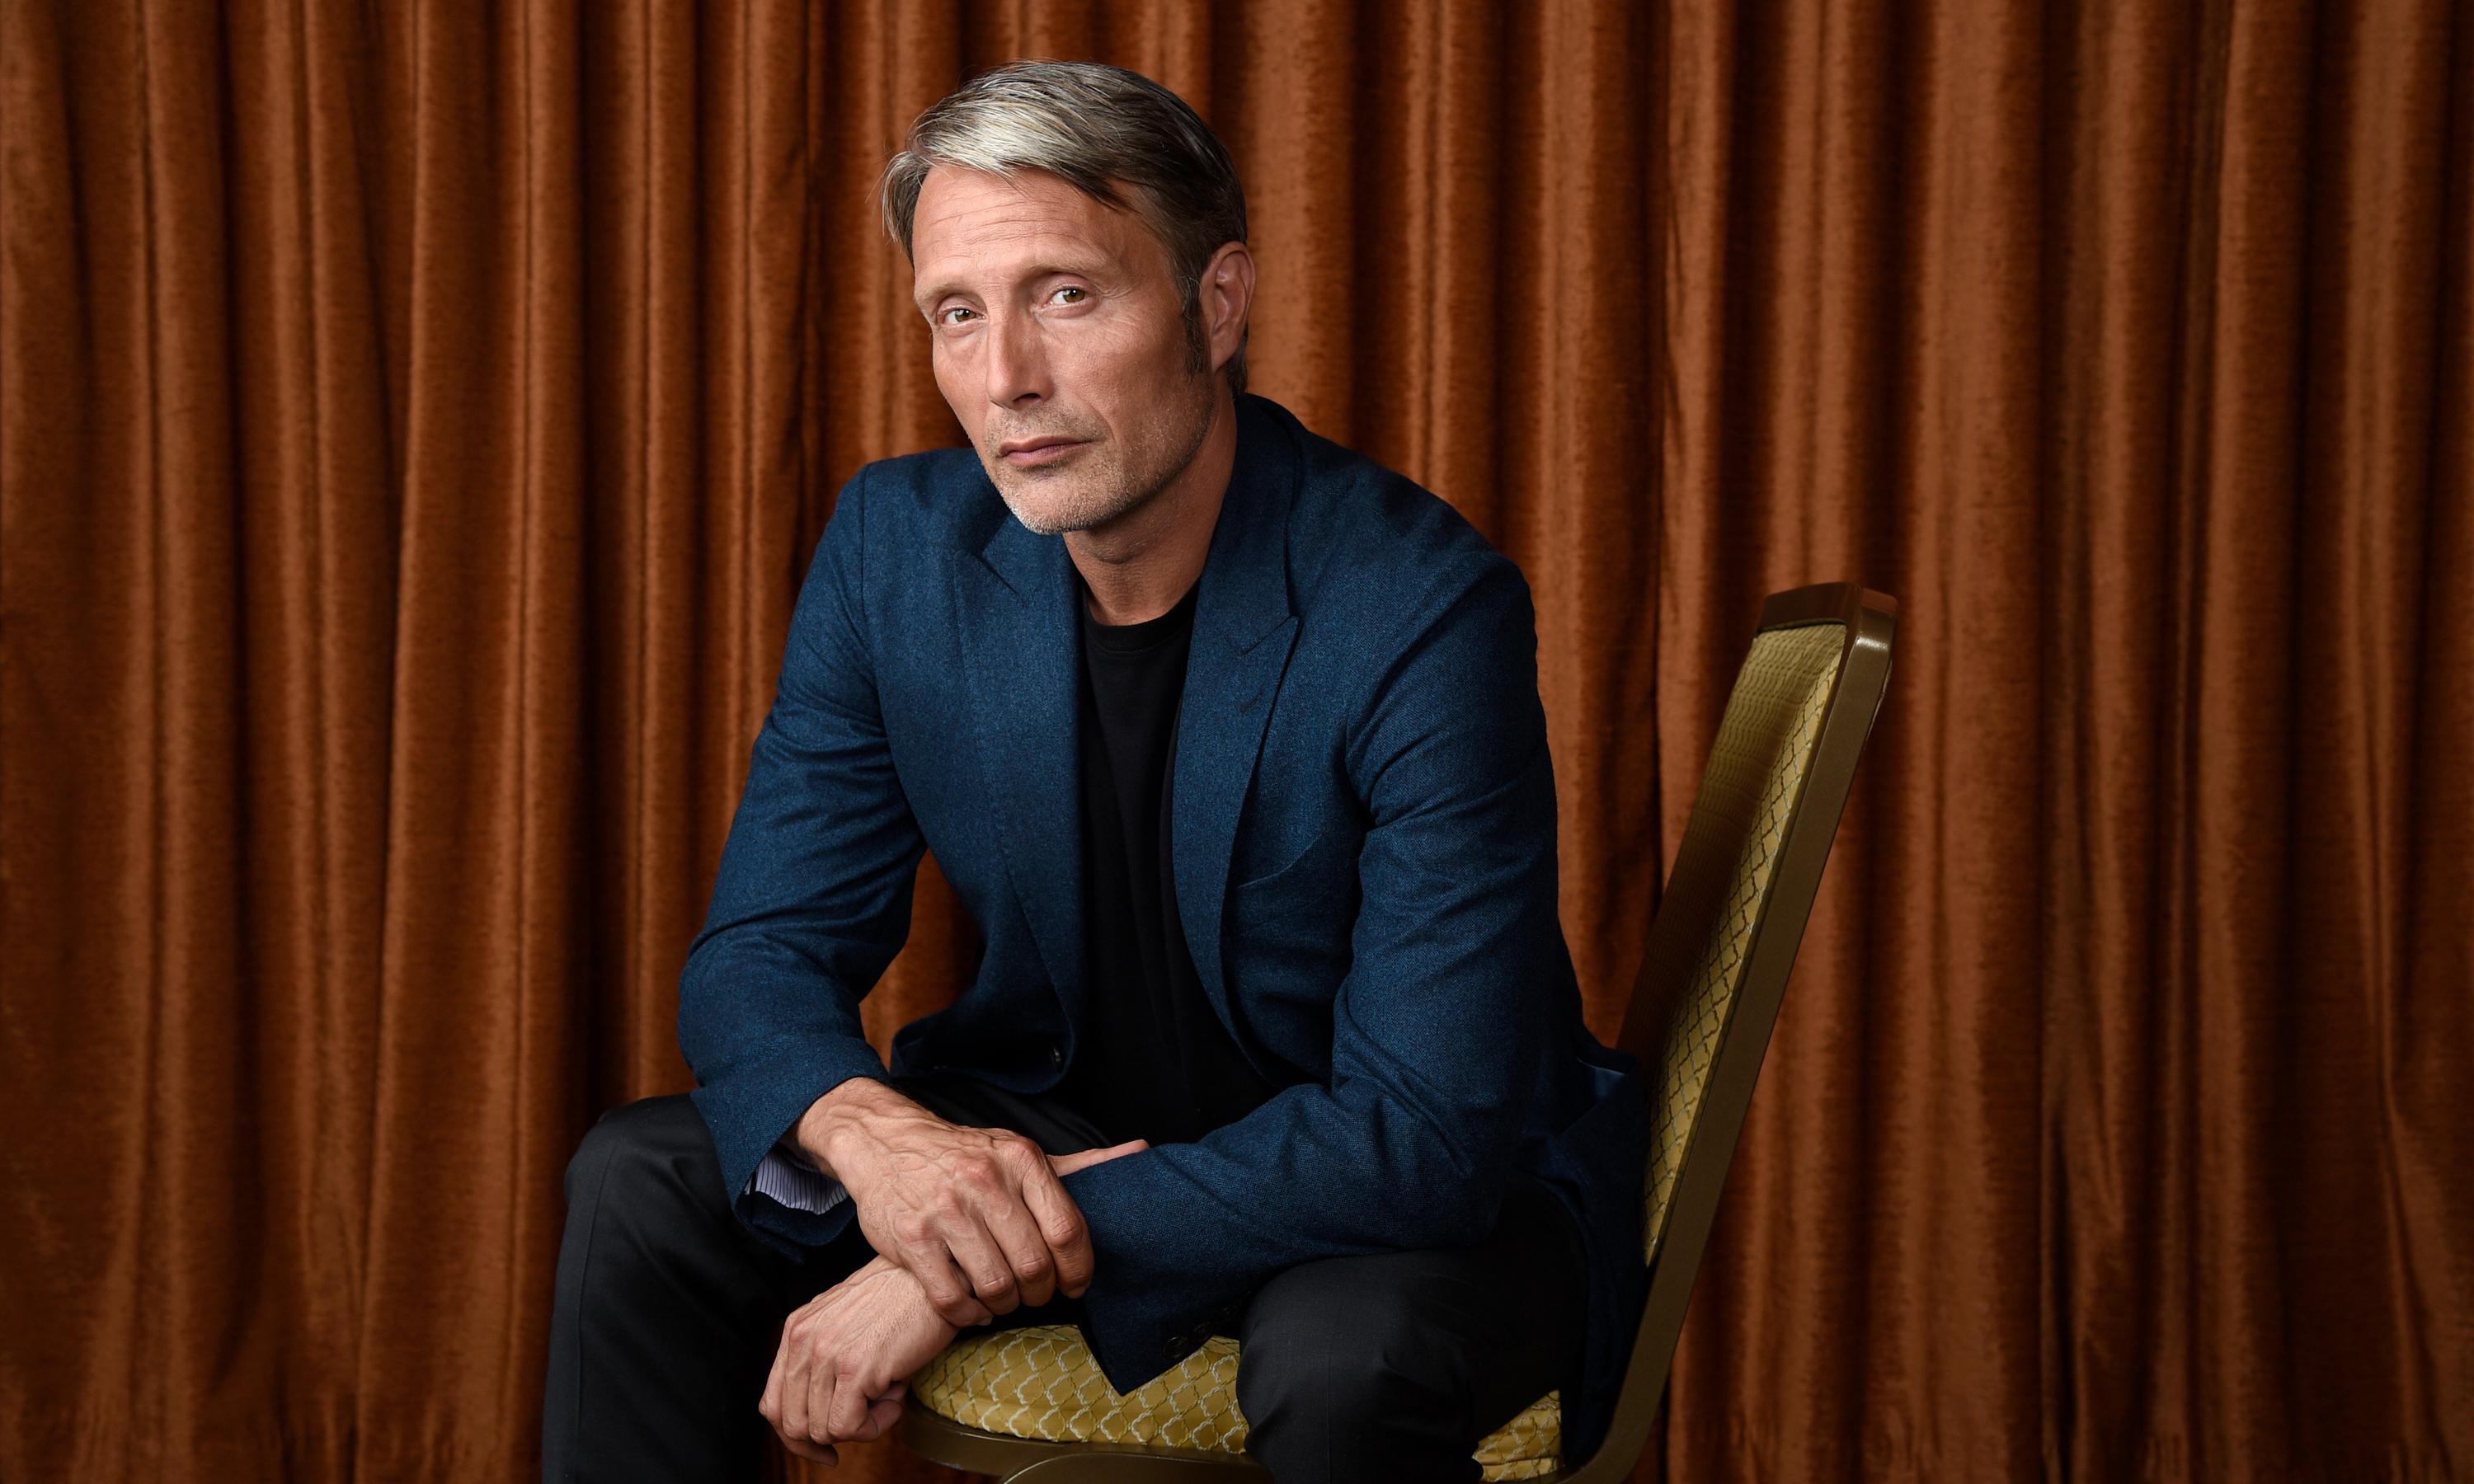 Mads Mikkelsen: 'One word wrong and you're a dead person'